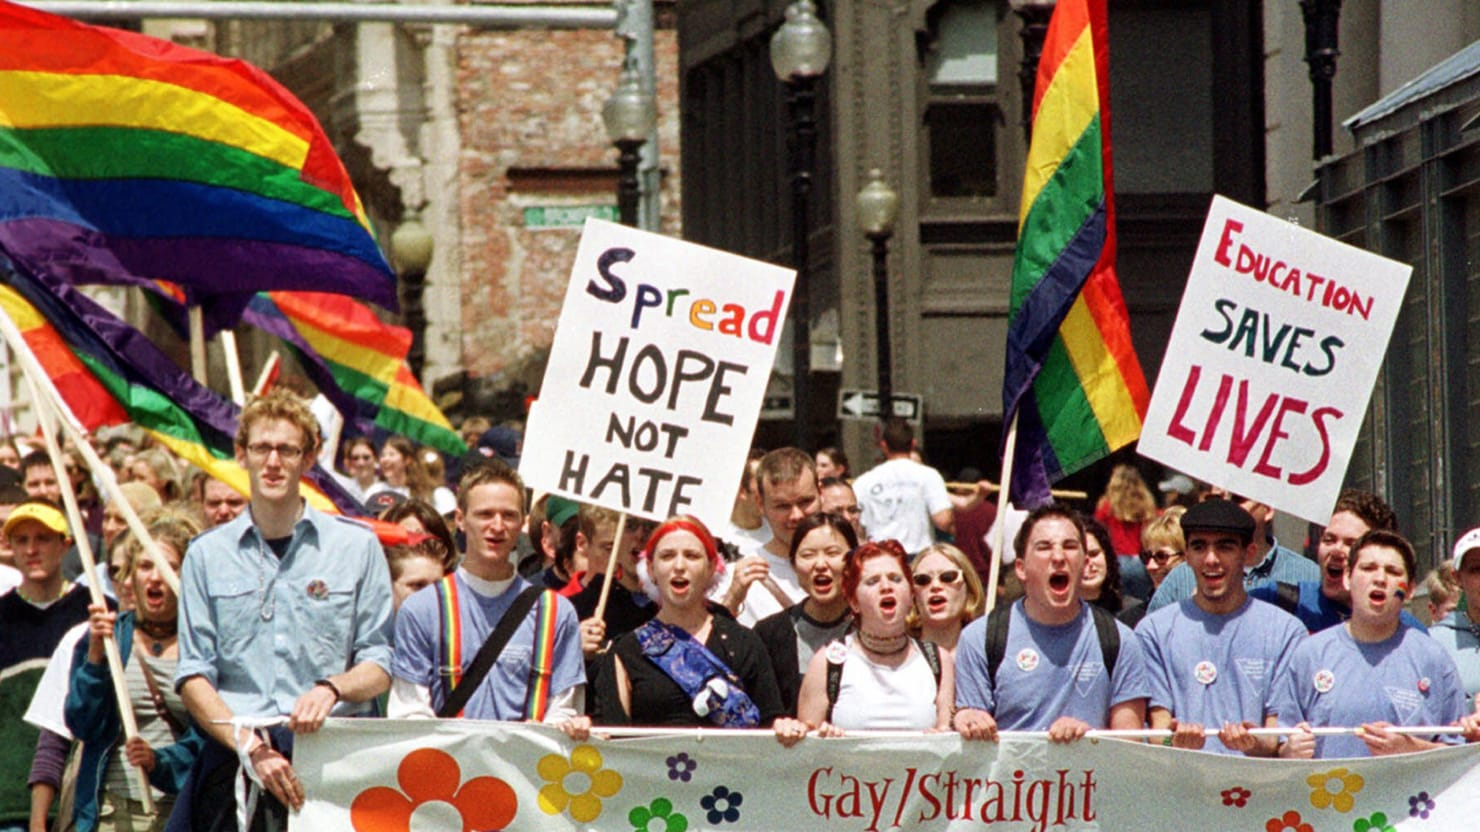 Believers Must Fight for Gay Teens